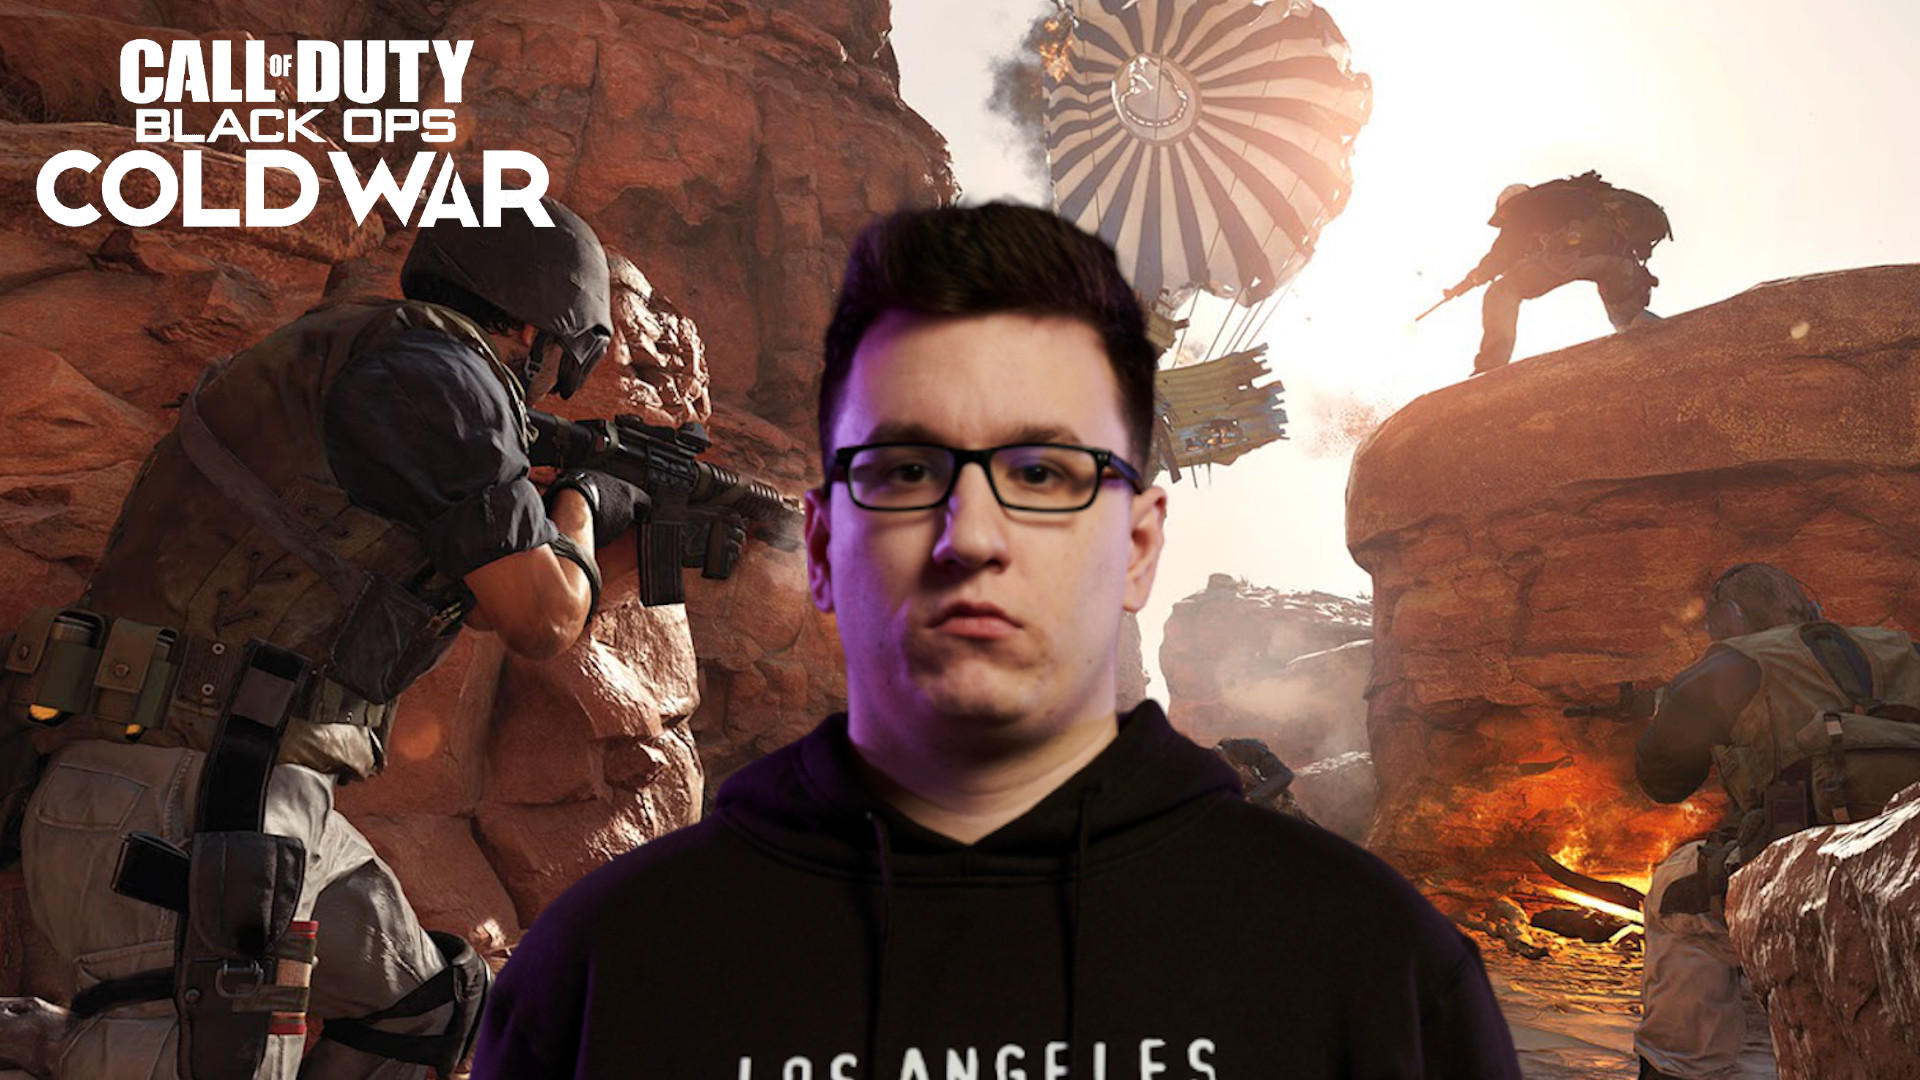 aches black ops cold war